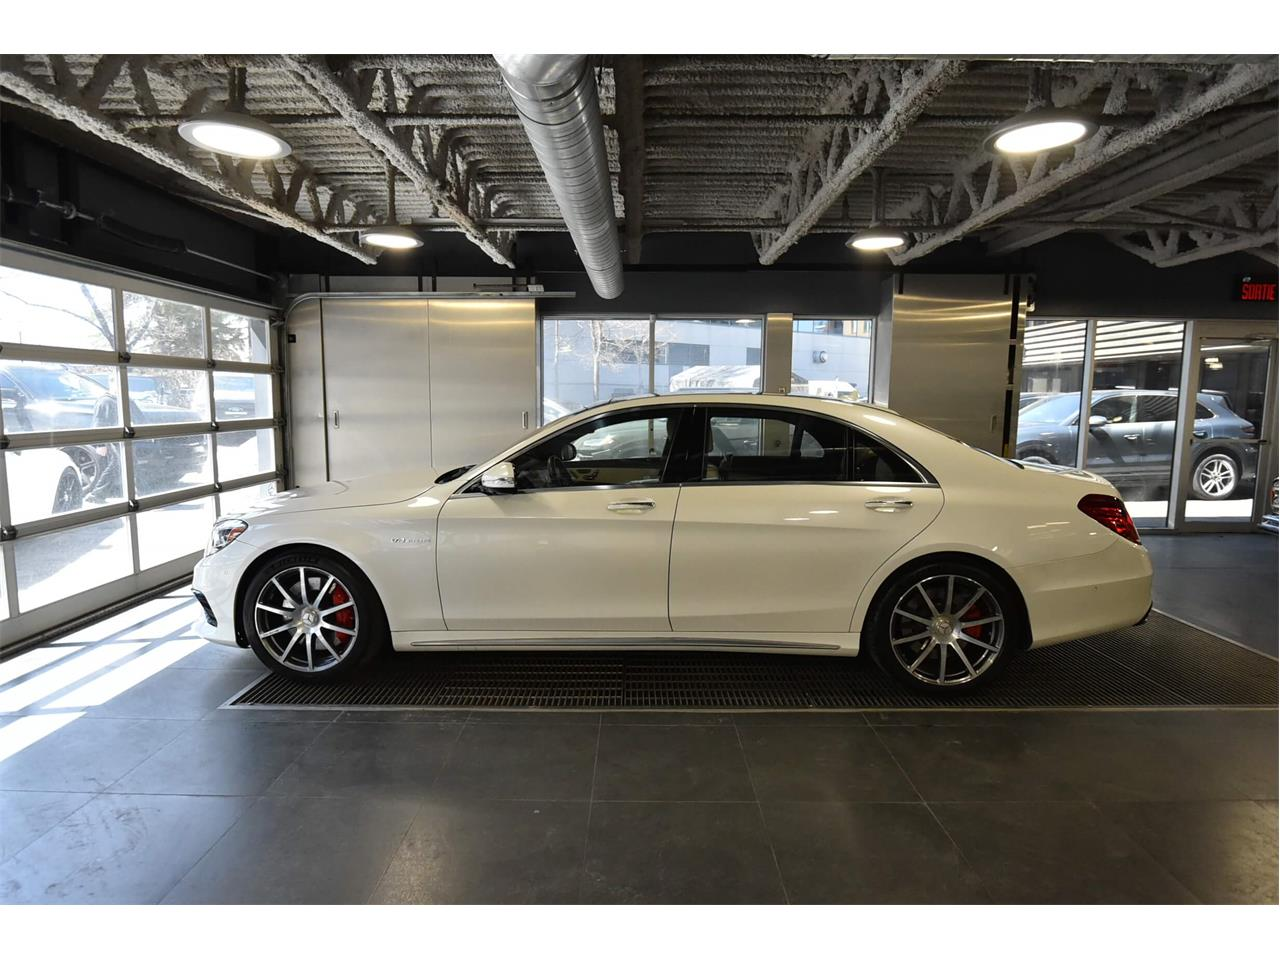 2017 Mercedes-Benz S-Class (CC-1215283) for sale in Montreal, Quebec